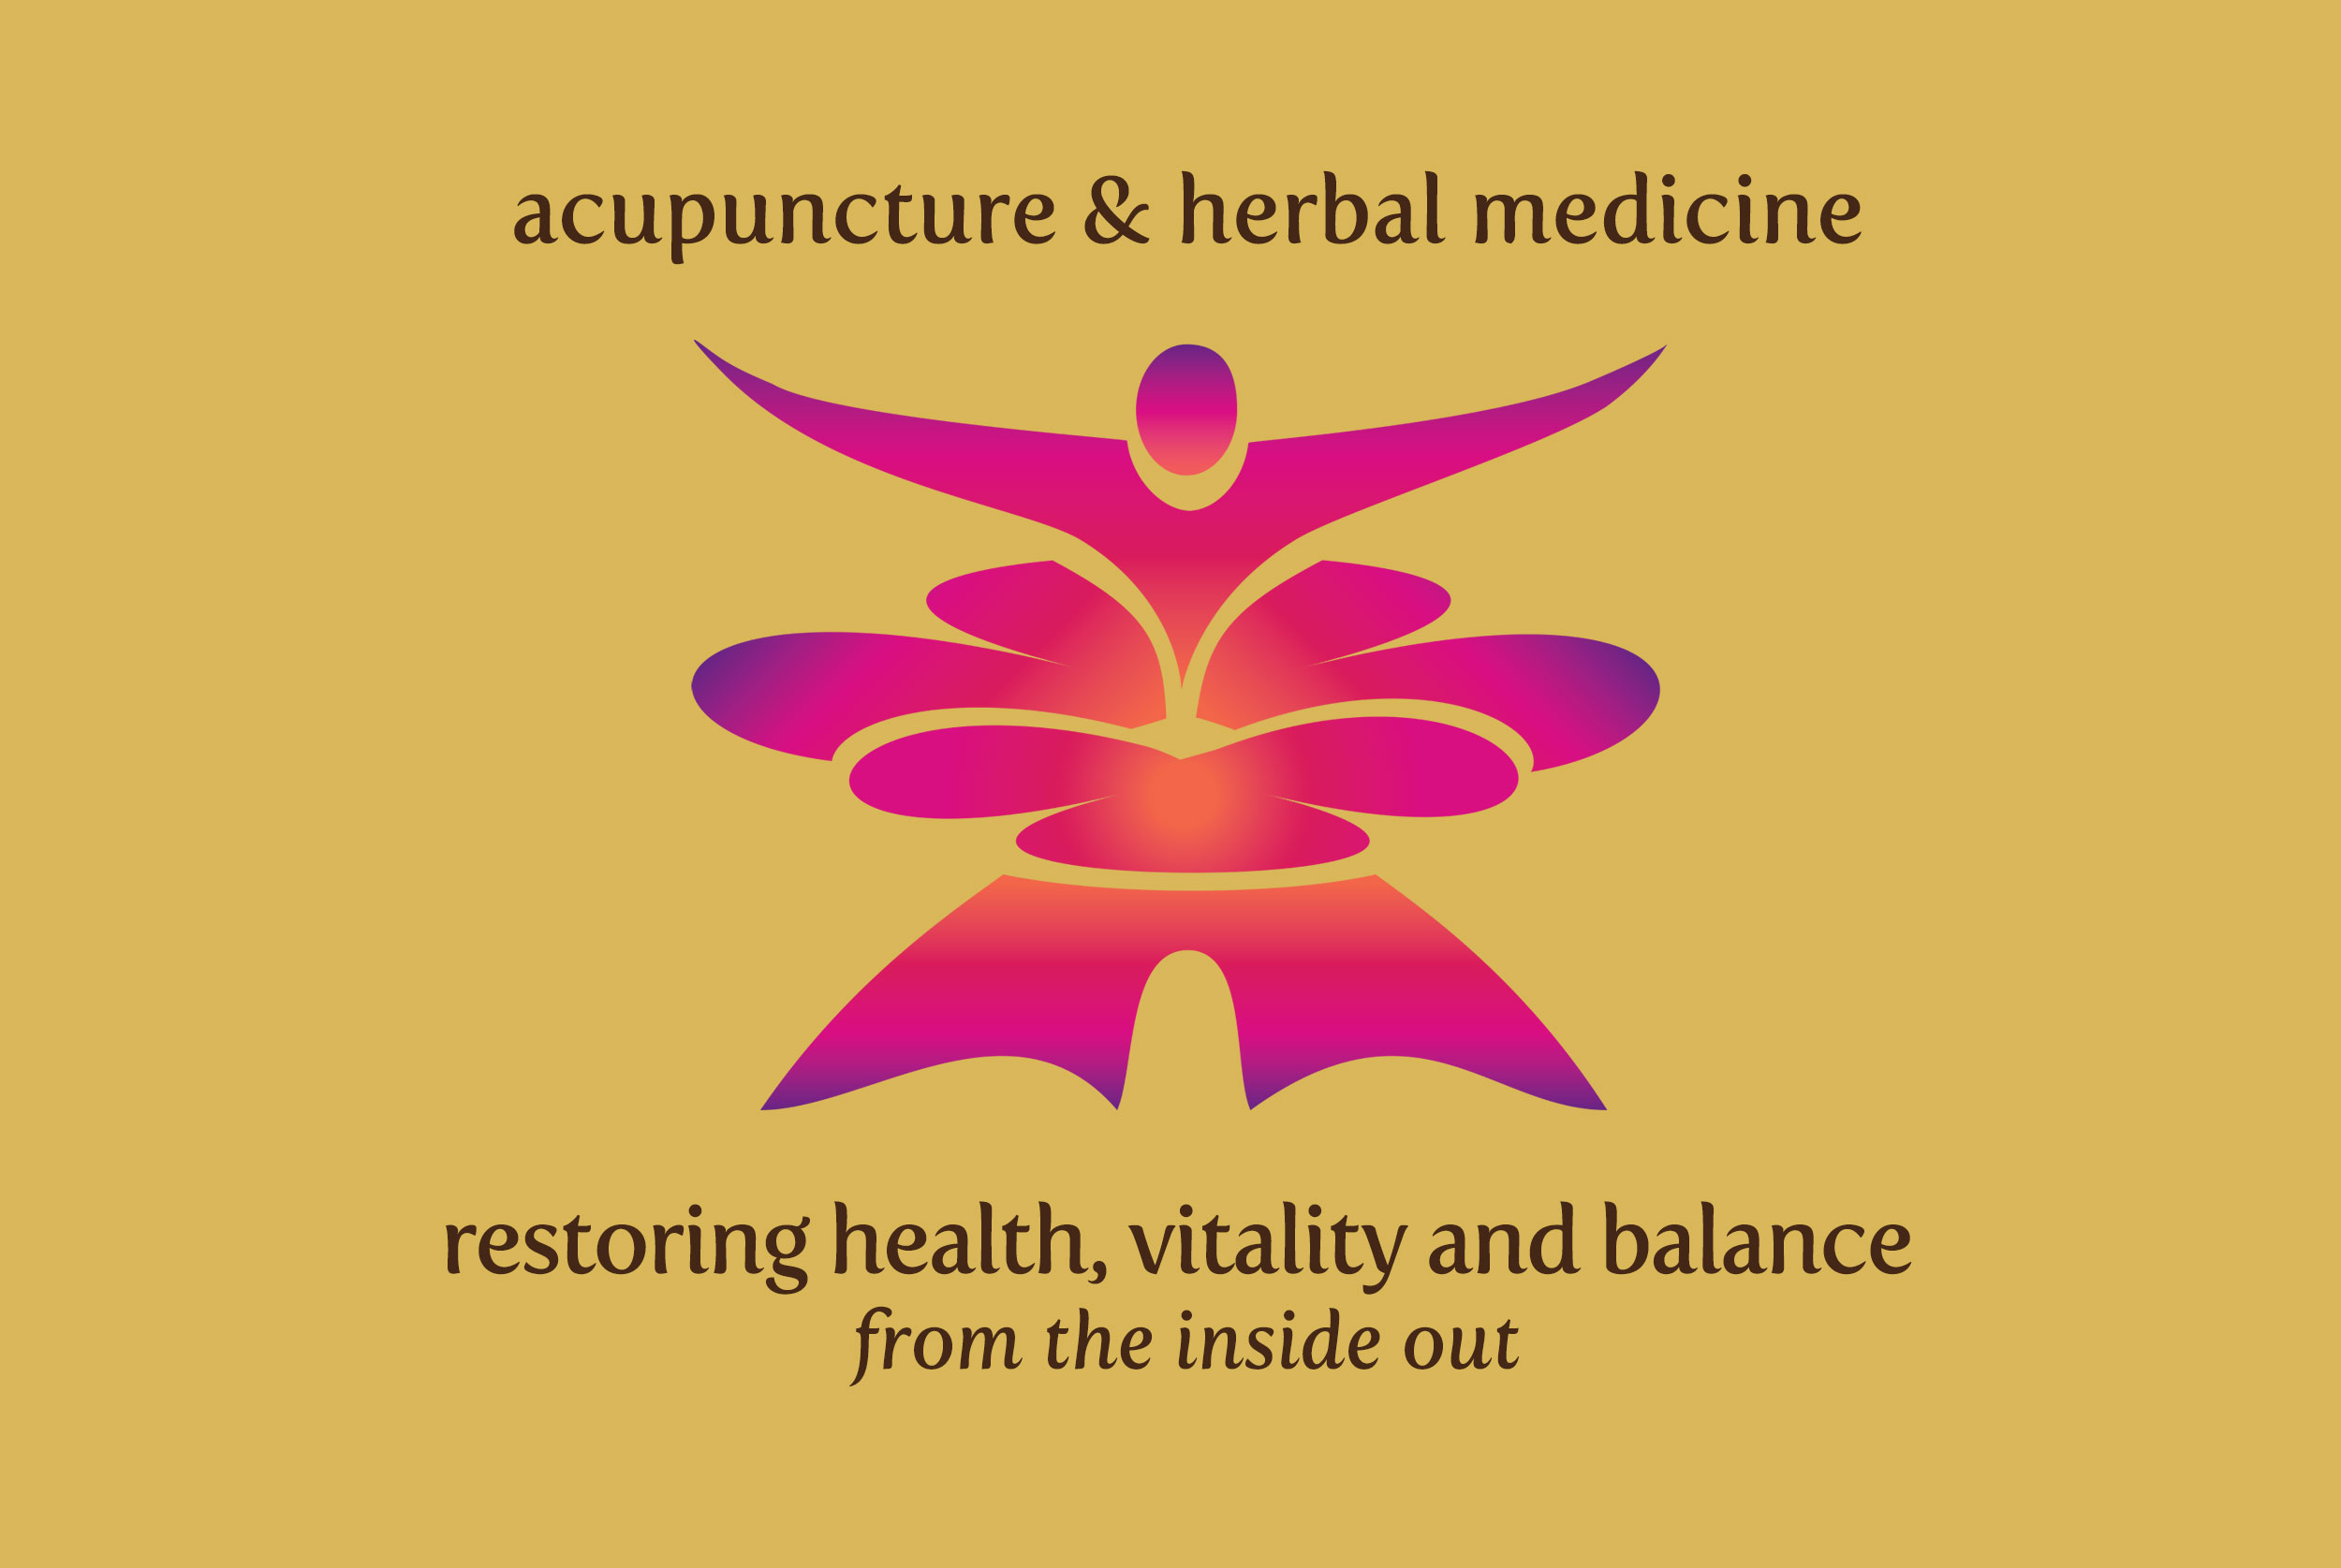 Acupuncture & herbal medicine - Restoring health, vitality and balance from the inside out.